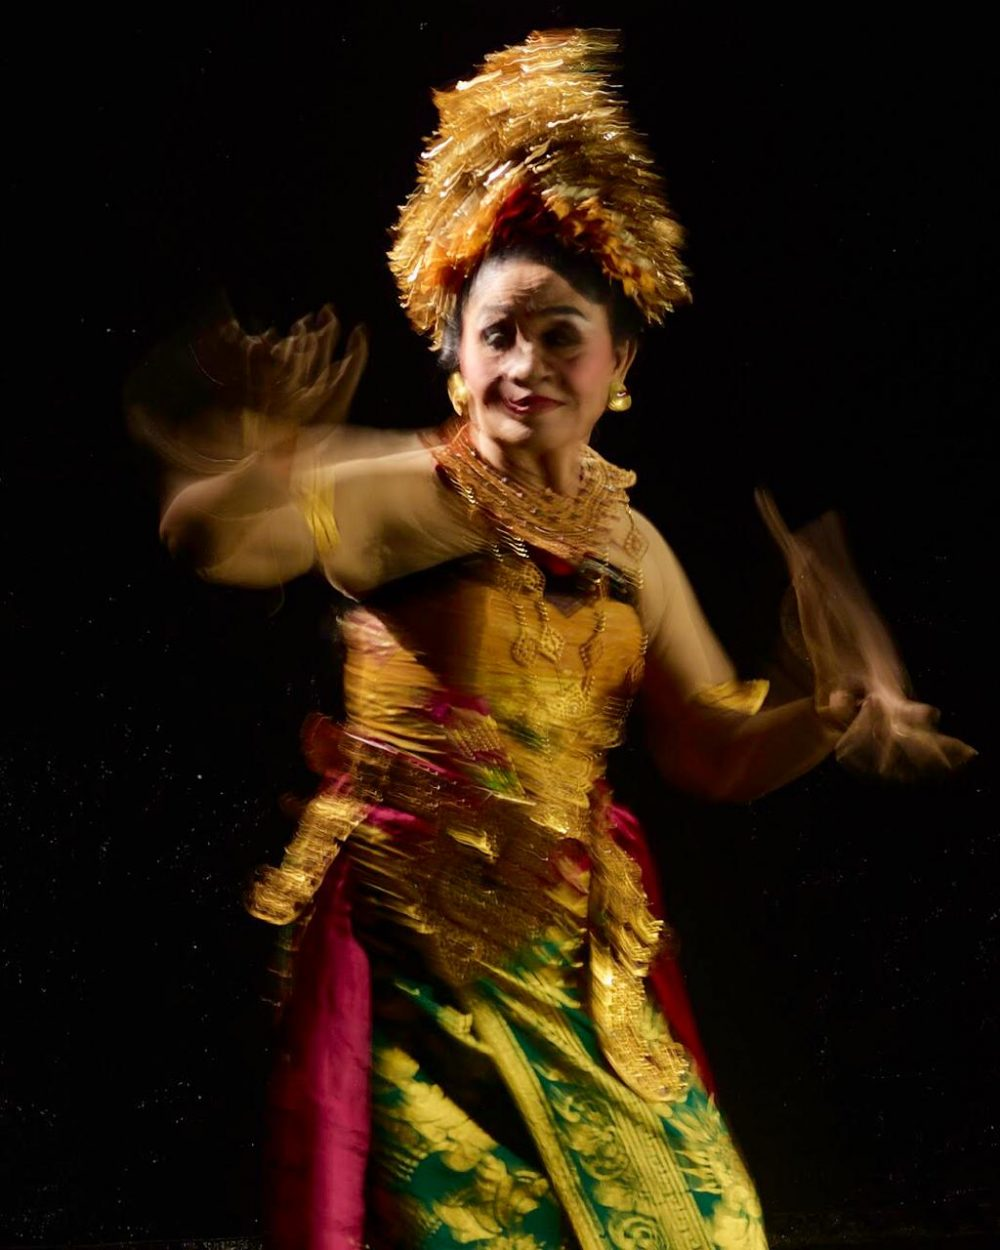 CANDRA METU: A Bali's Dance Legend in the Eyes of a Photographer